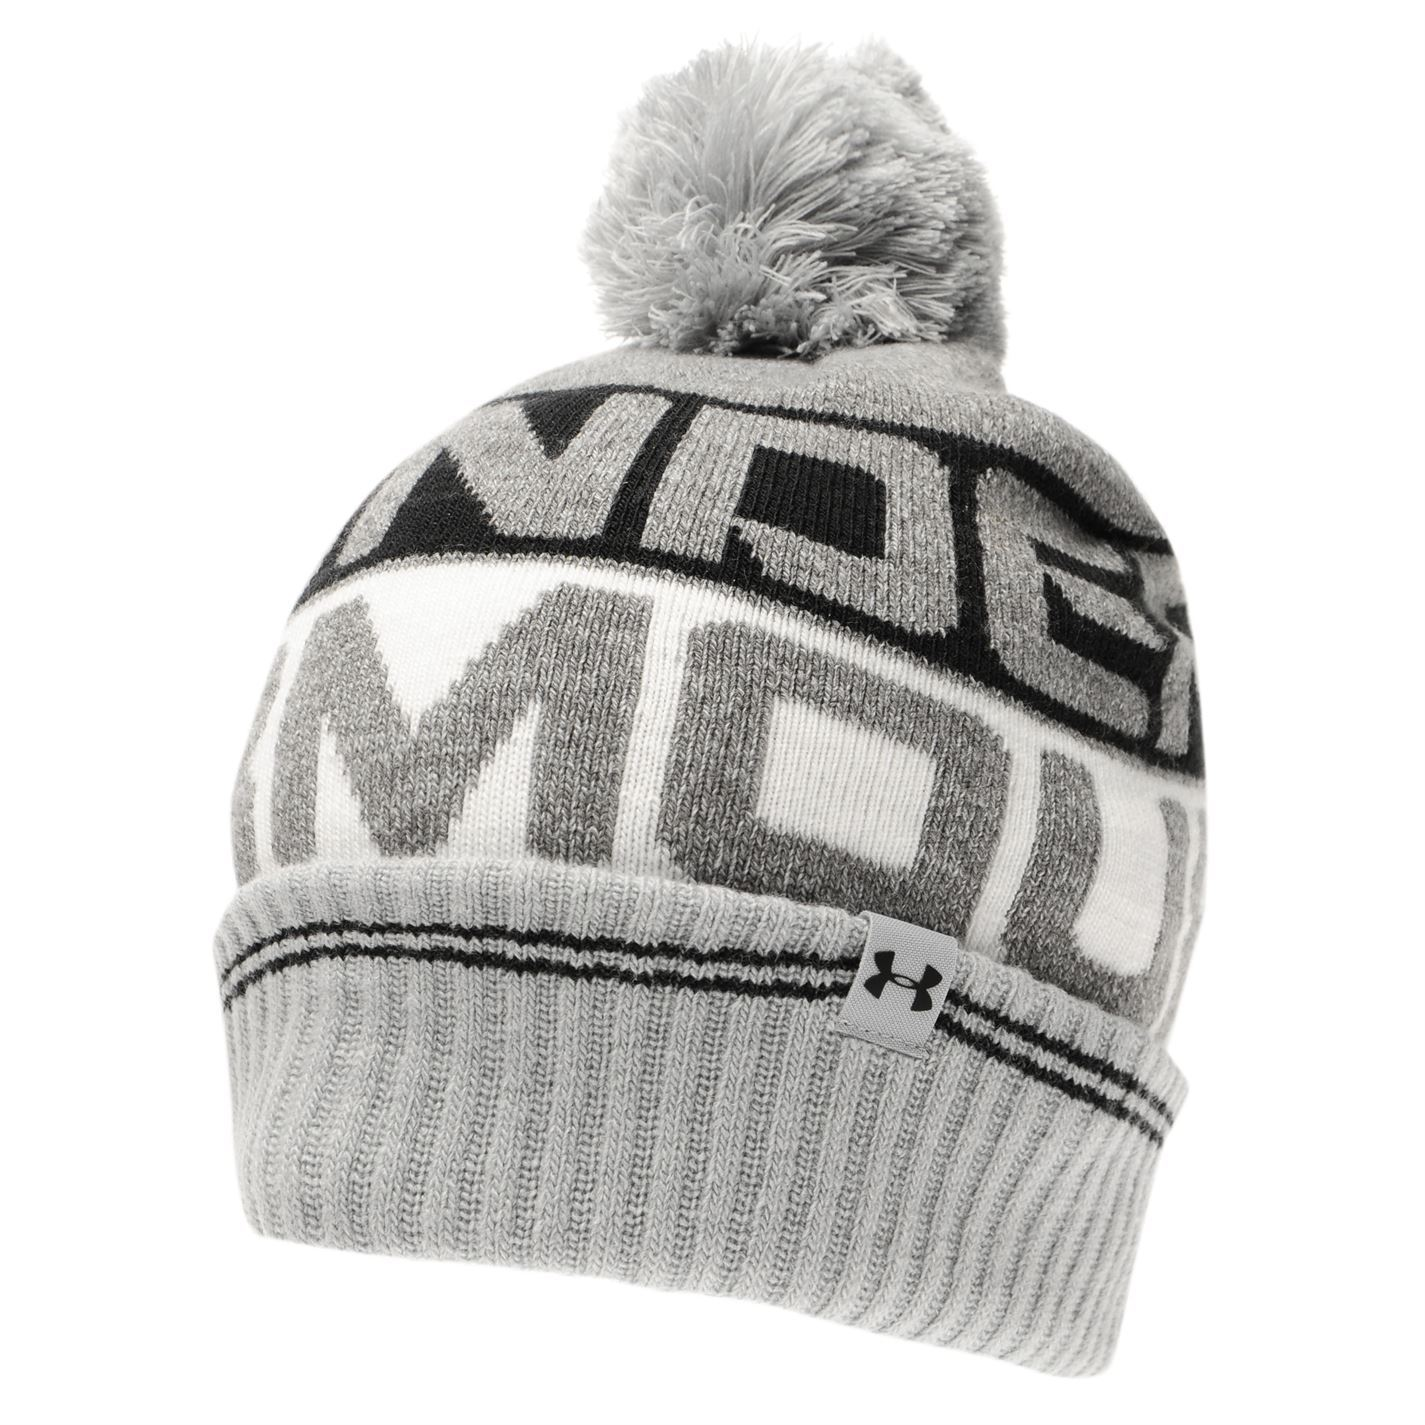 bbd8f52d0df The Mens Under Armour Retro Pompom Beanie is perfect for the cold winter  weather